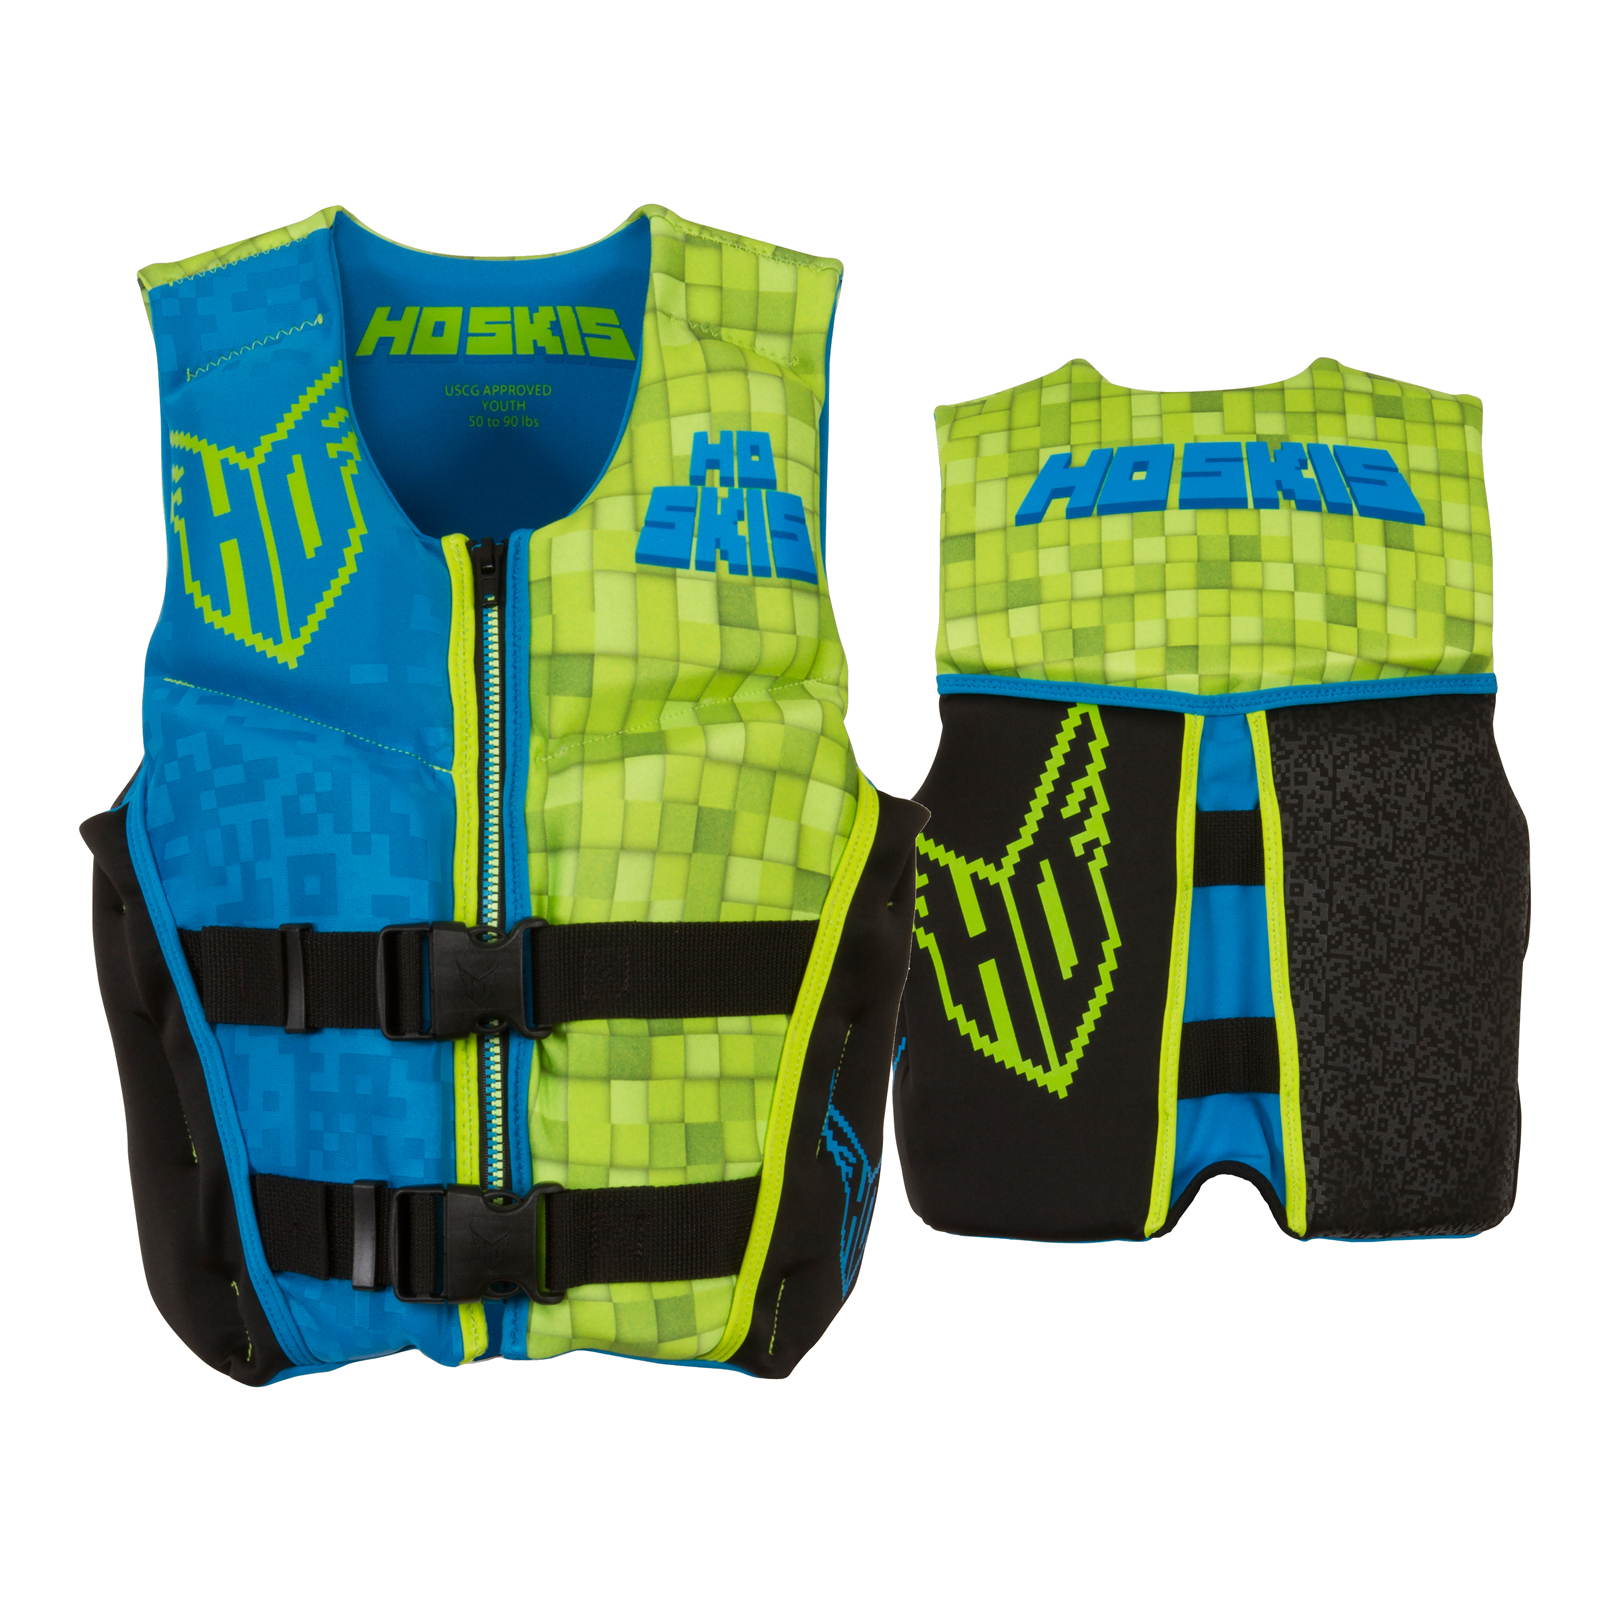 PURSUIT BOY'S NEO LIFE VEST - 22-40KG HO SPORTS 2018